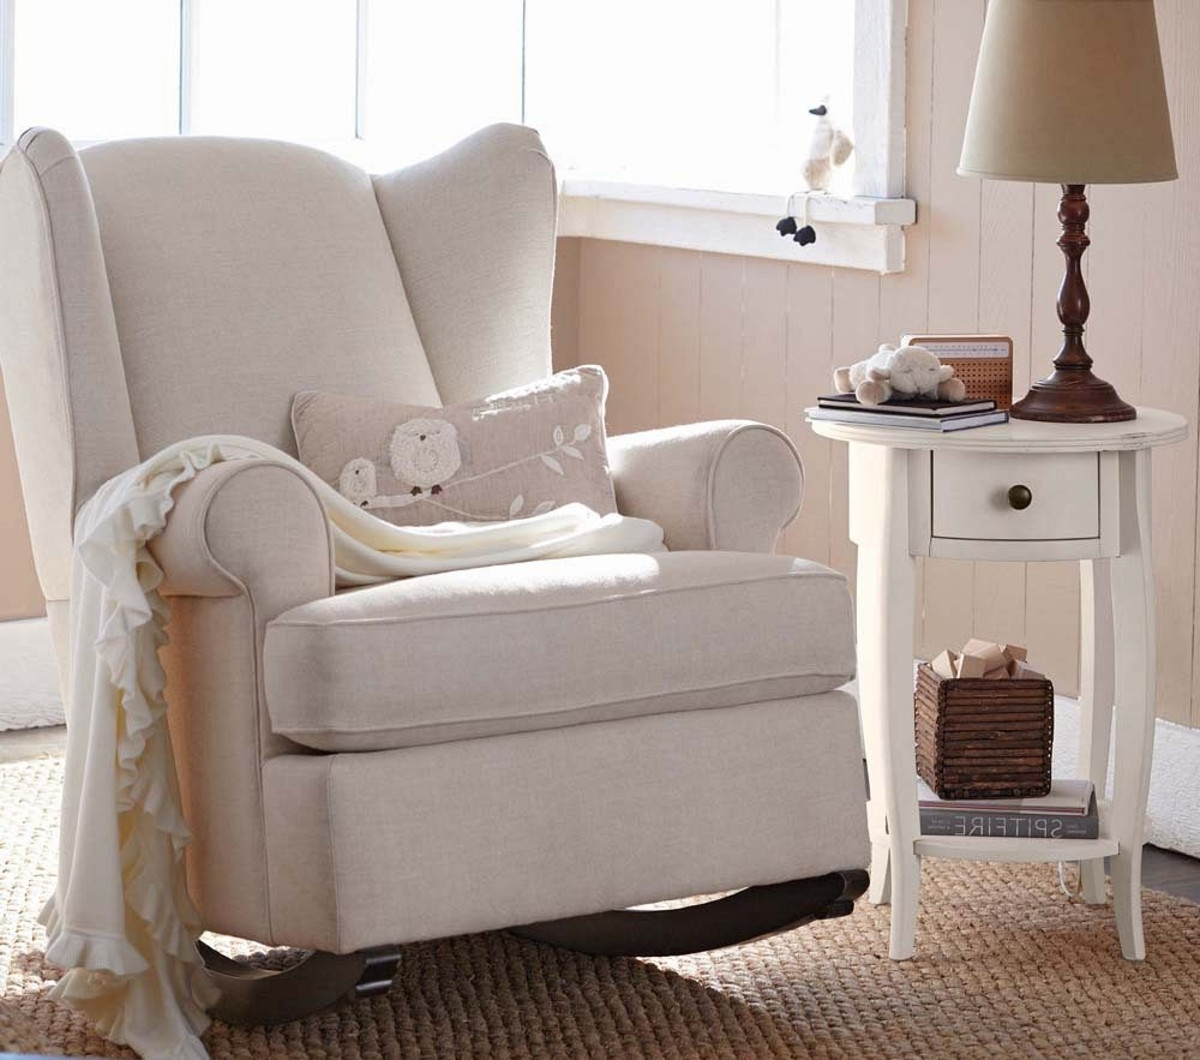 Rocking Chairs For Nursing Inside Well Known Baby Nursery: Nice Rocking Chair For Baby Nursery Ideas Babies R Us (View 11 of 15)